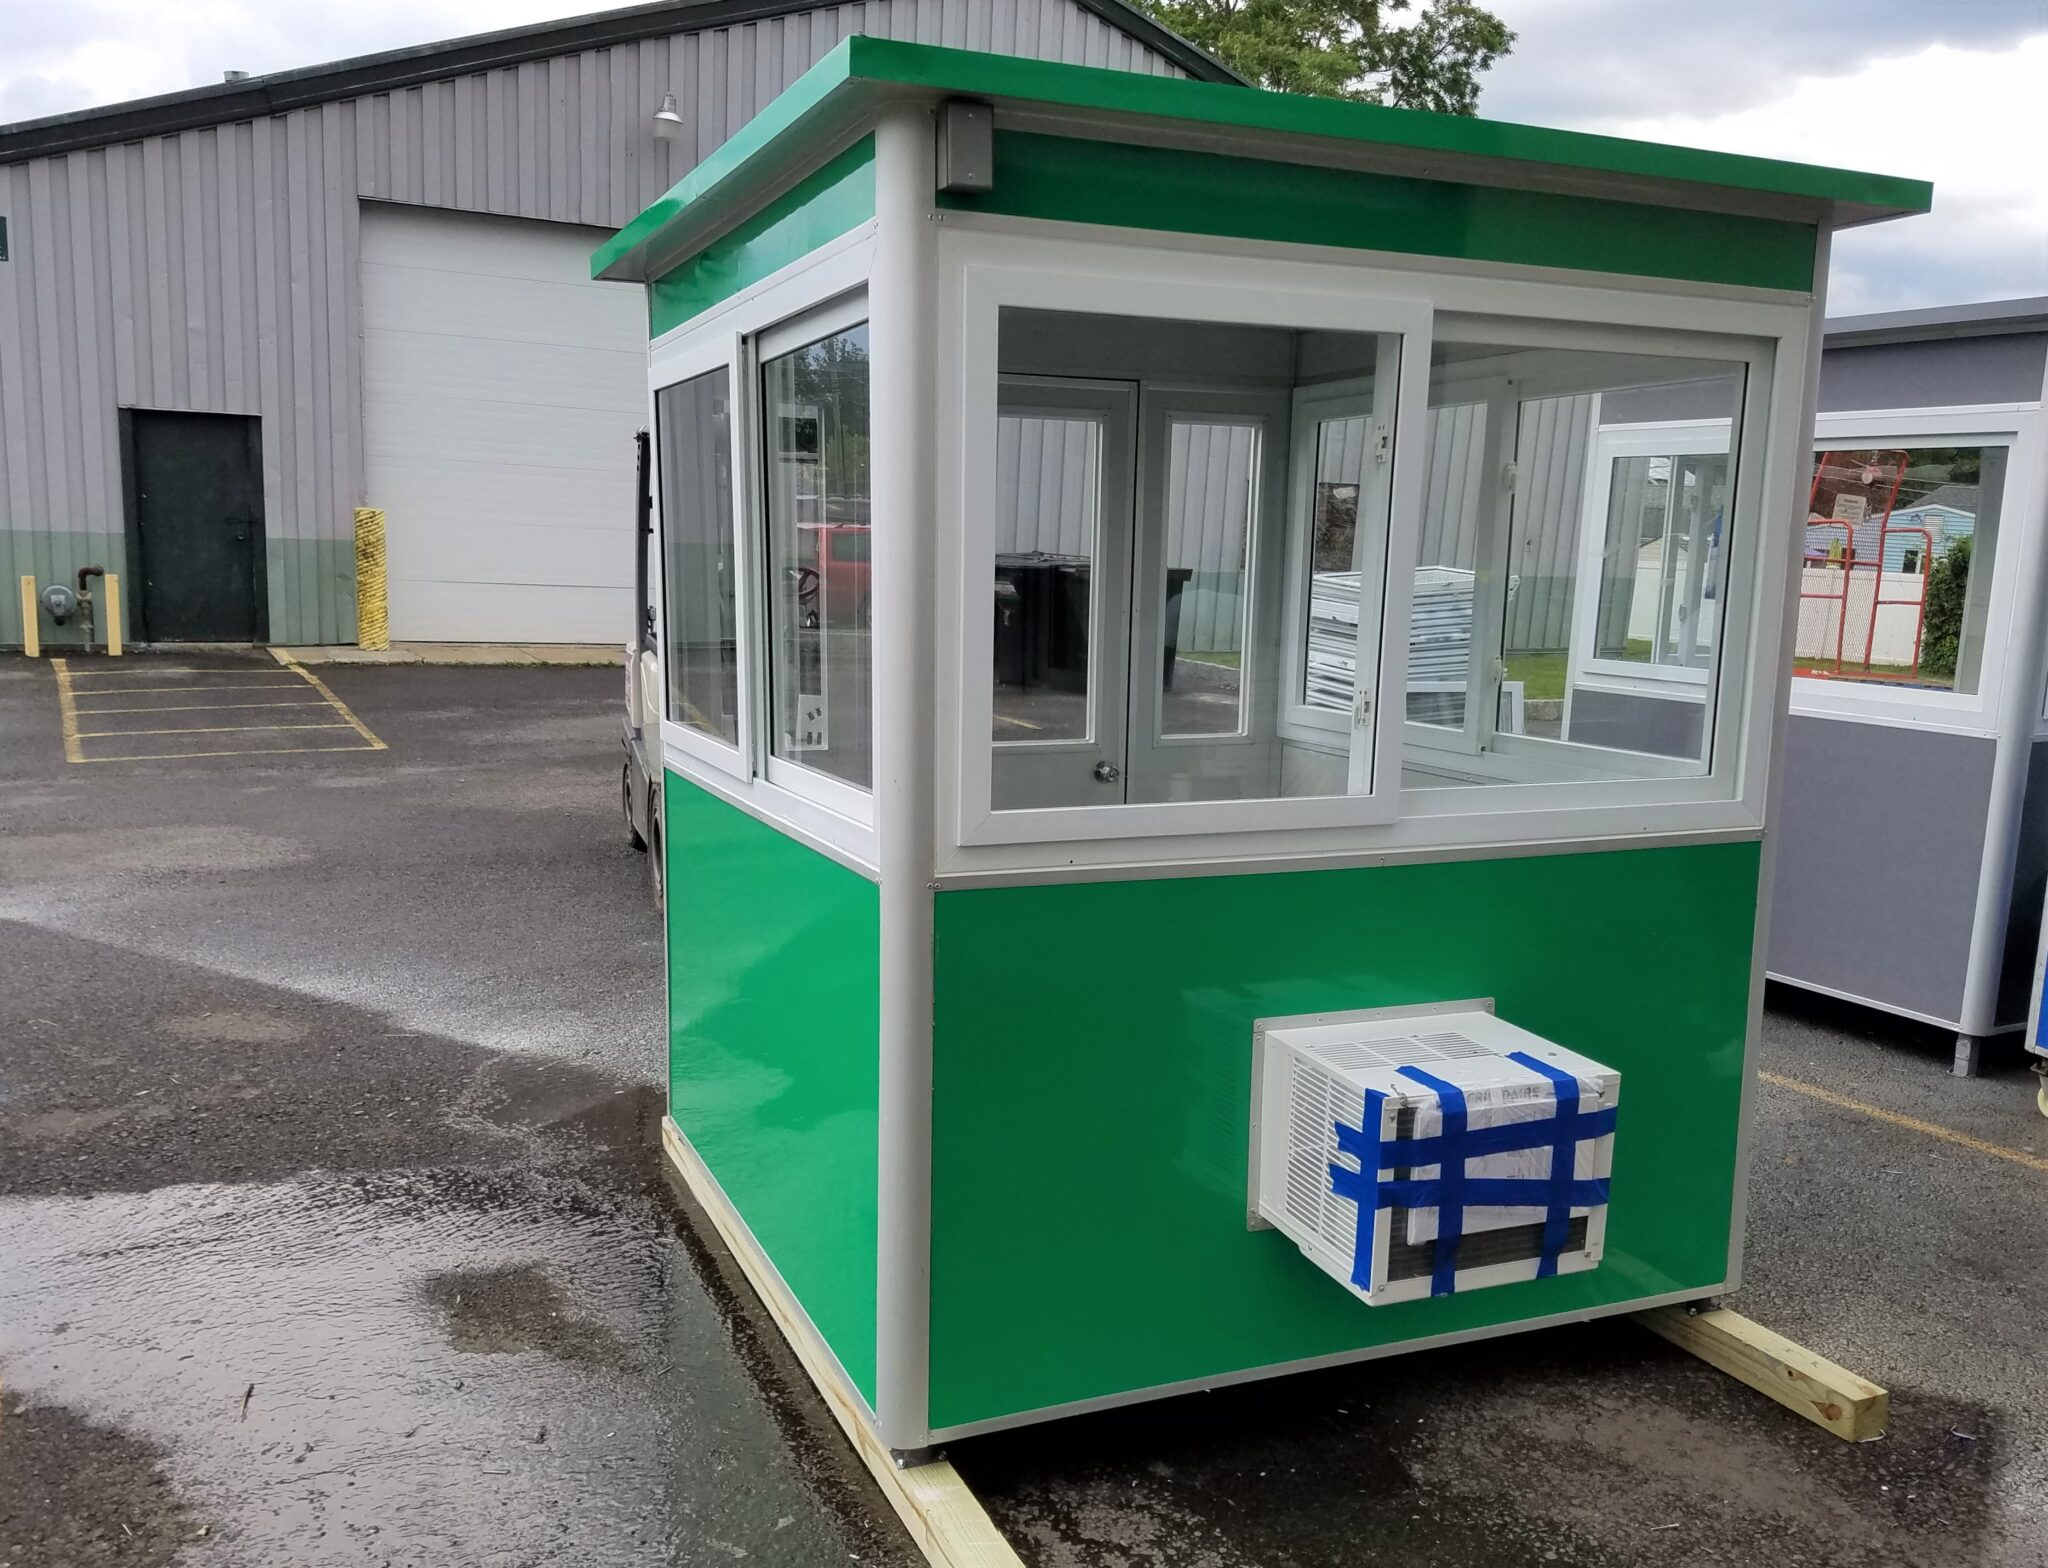 6x6 Parking Booth in Charlotte, NC with Built-in AC, Baseboard Heaters, Sliding Windows, Swing Door, and Anchoring Brackets